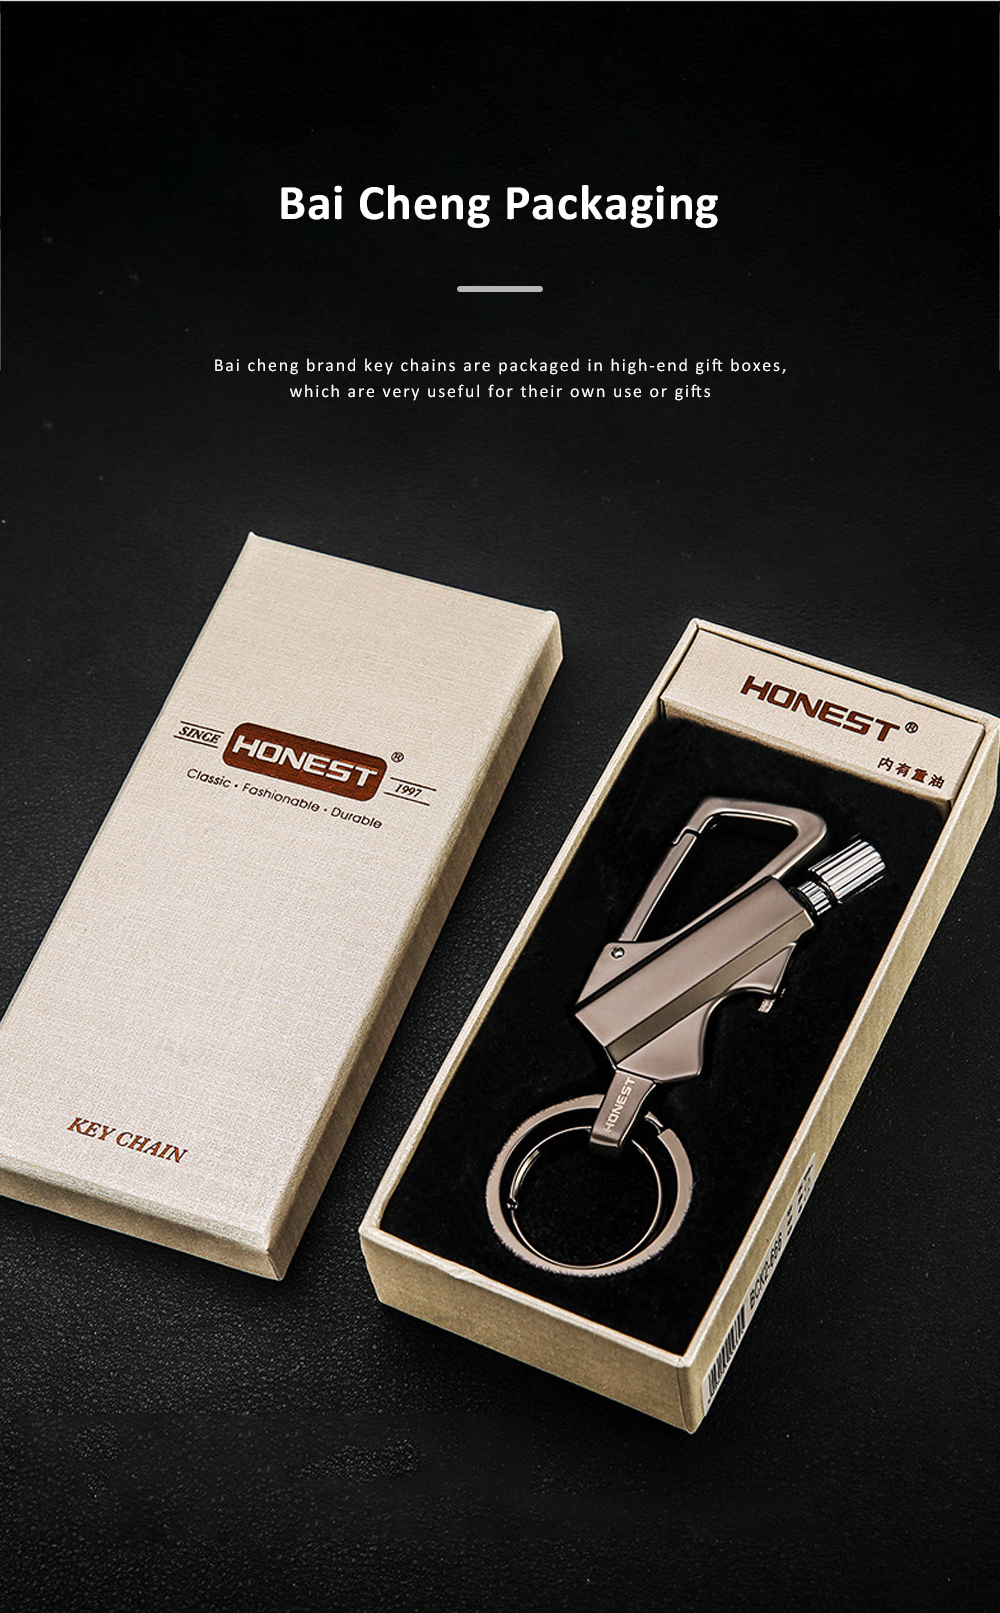 3 In 1 Classic Fashion Simple Metal Zinc Alloy Car Key Chain Bottle Opener Thousand Matches Carabiner Multifunctional Key Chain 6